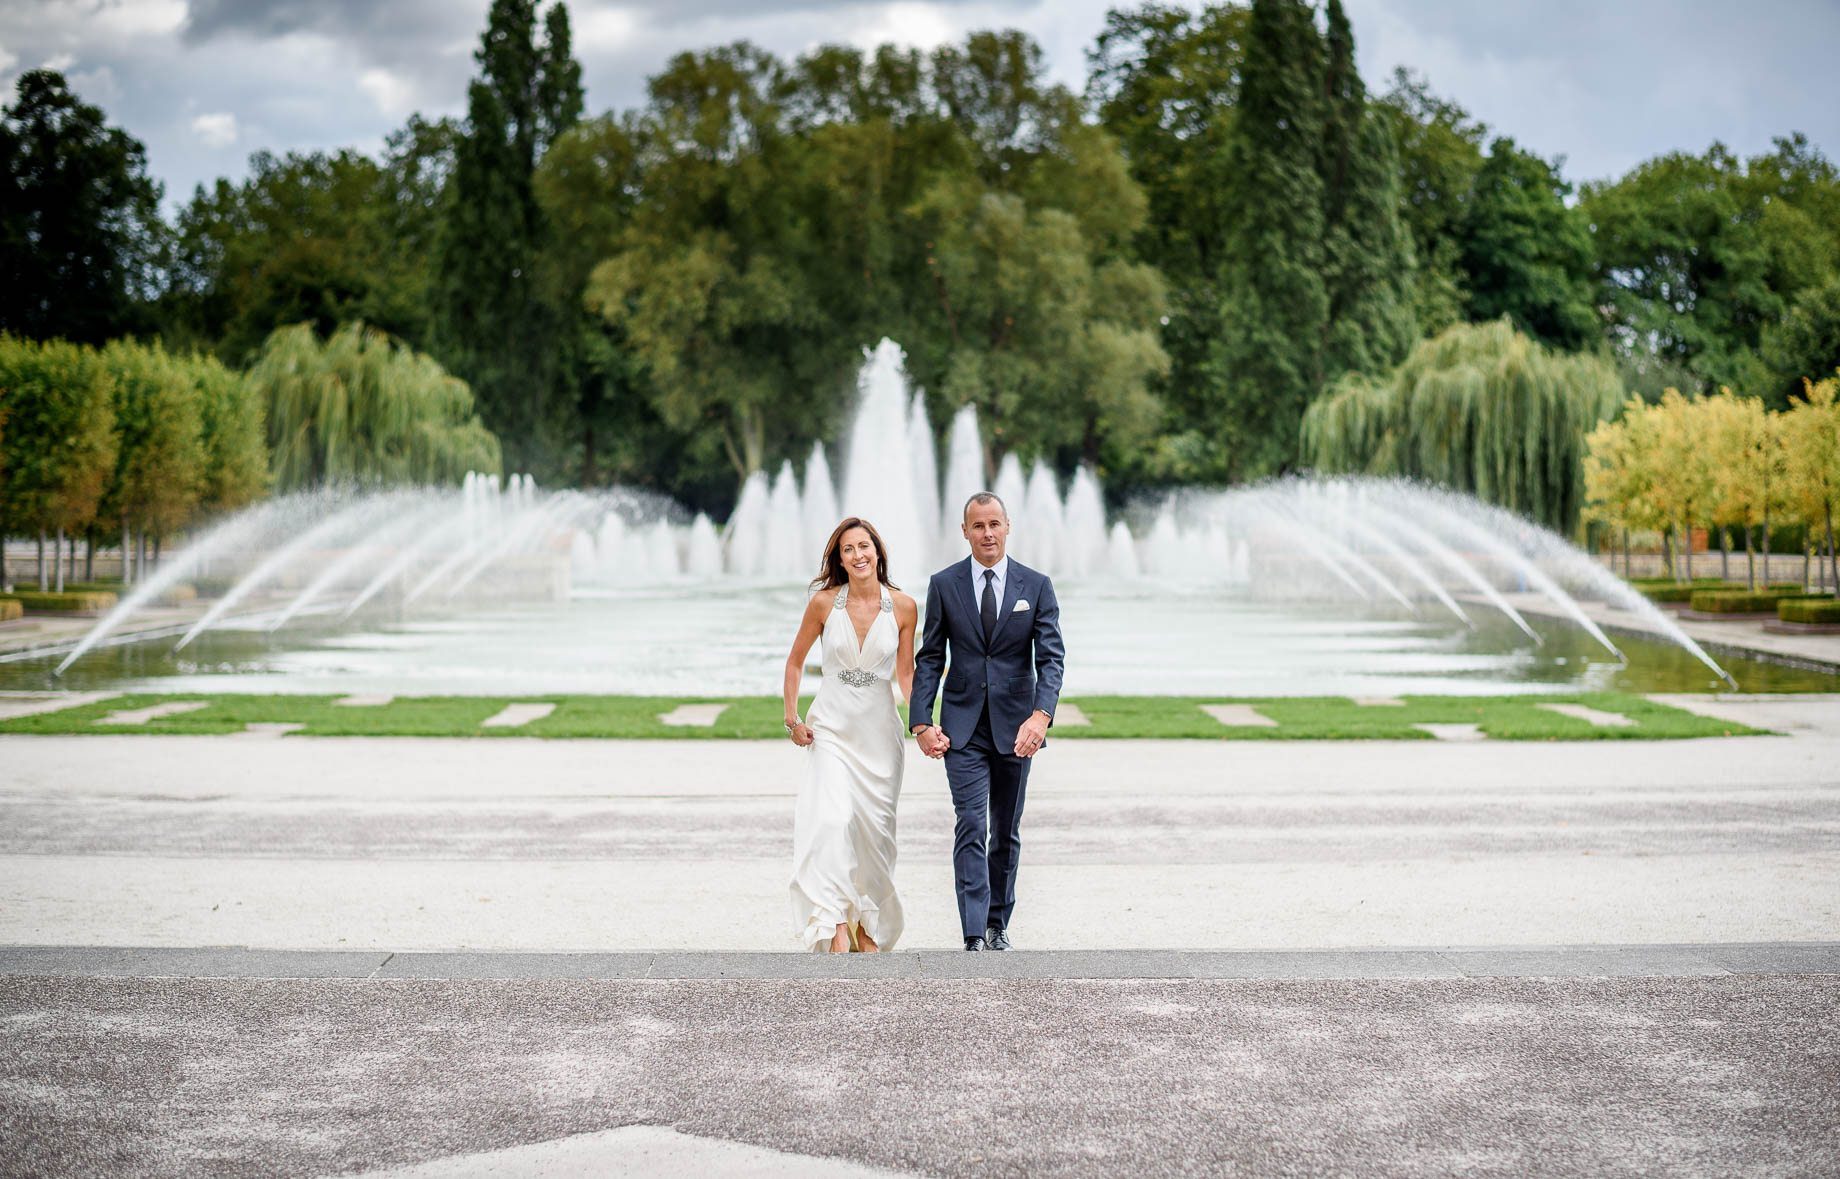 Chelsea-and-Mayfair-wedding-photography-Guy-Collier-Vicki-and-Damien-87-of-126